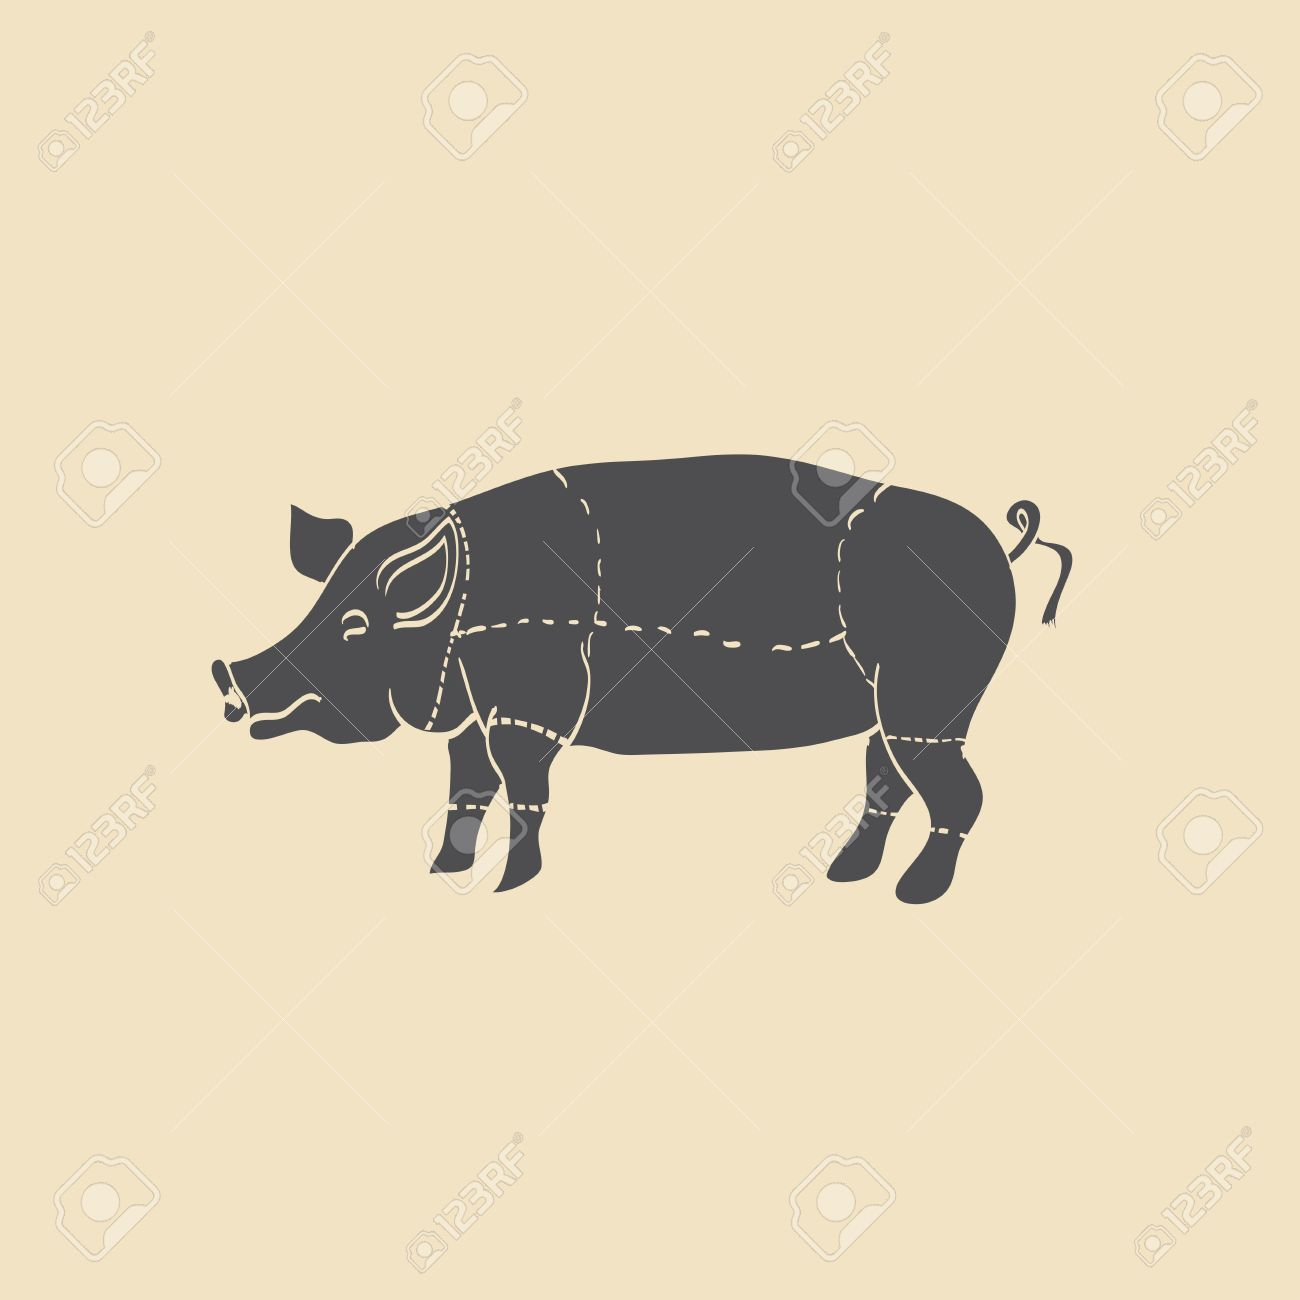 1300x1300 Pig Icon, Vector Pig Silhouette, Isolated Butcher Shop Sign